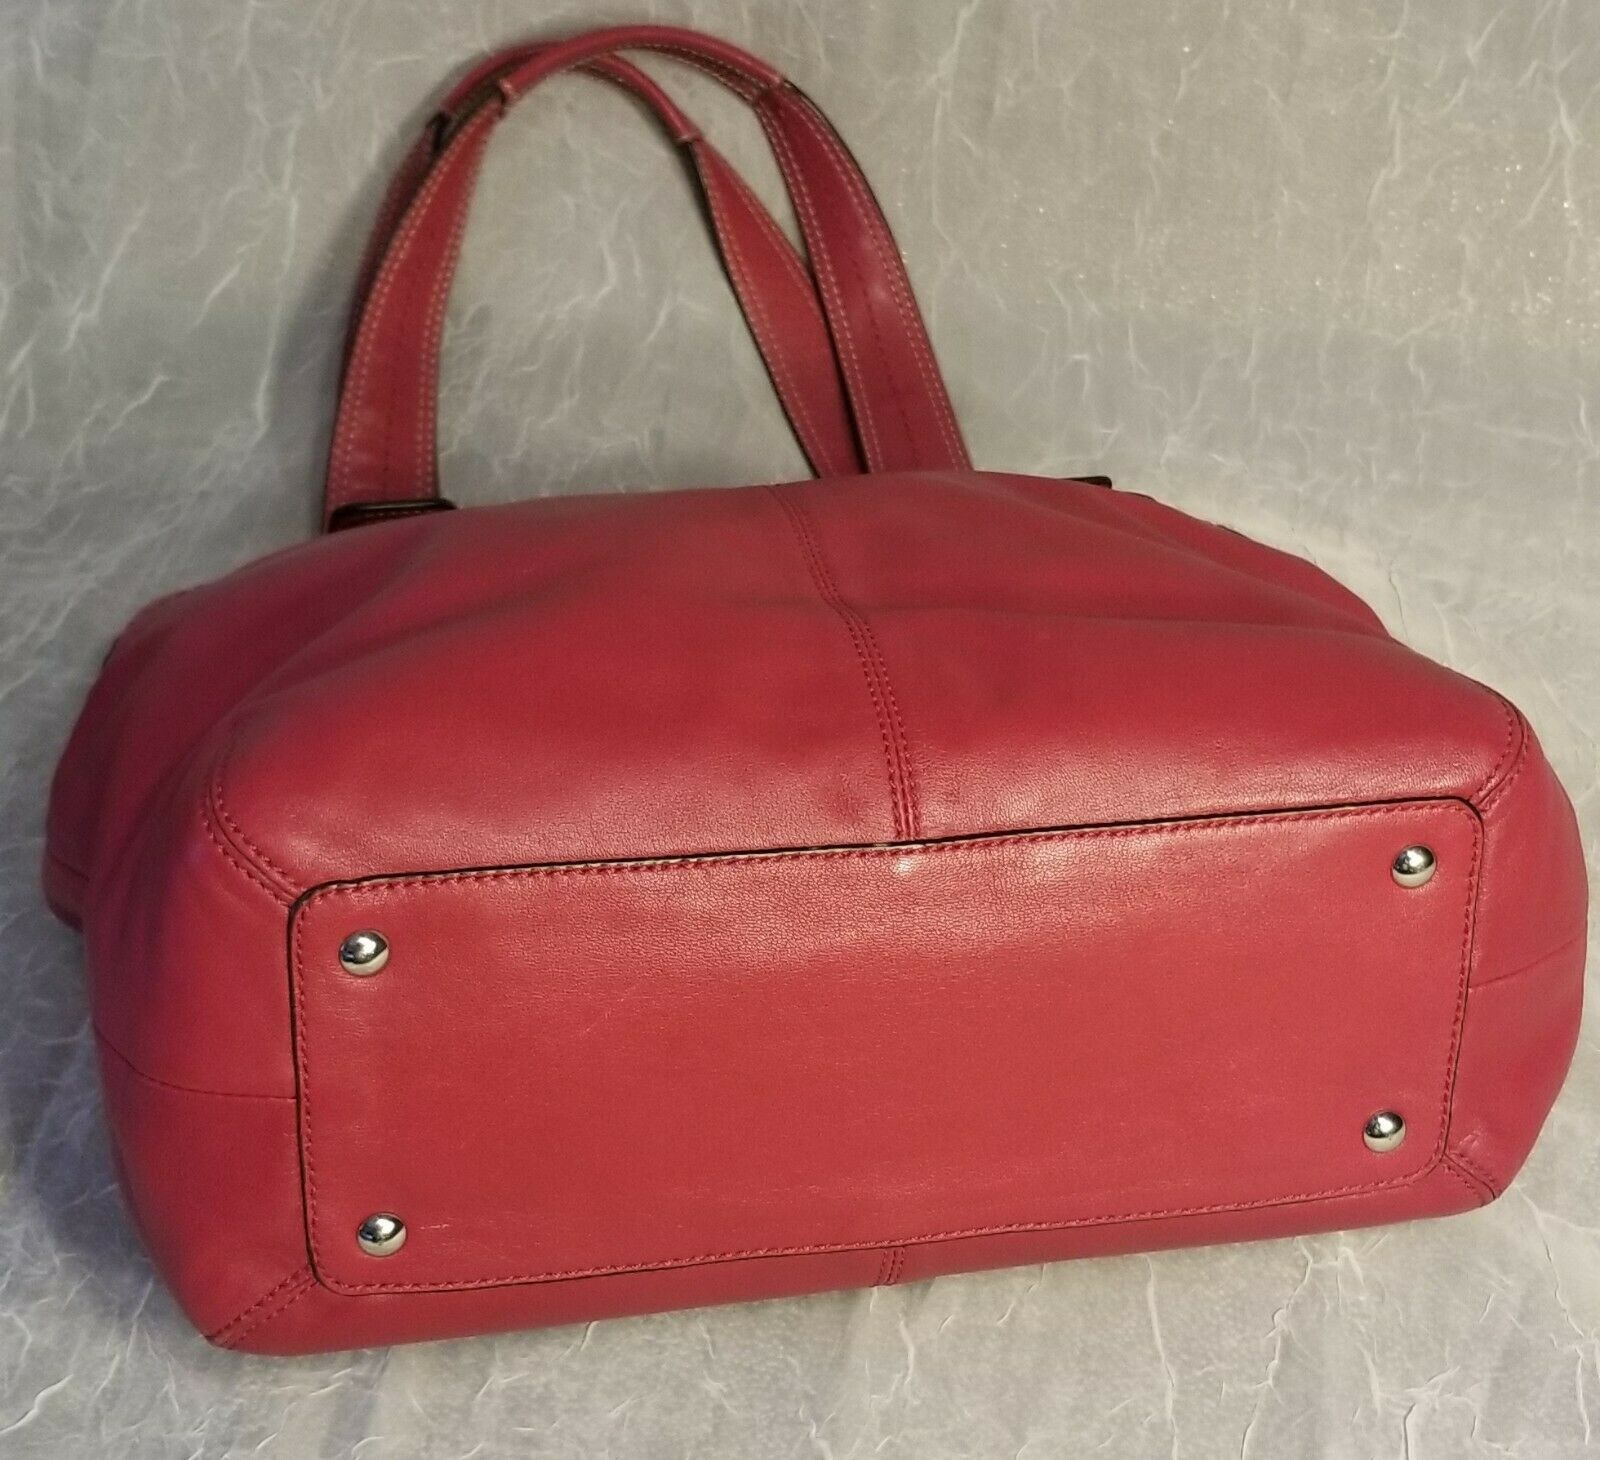 Genuine Leather Coach Shoulder Bag Red with Silver Hardware G1060-F15045